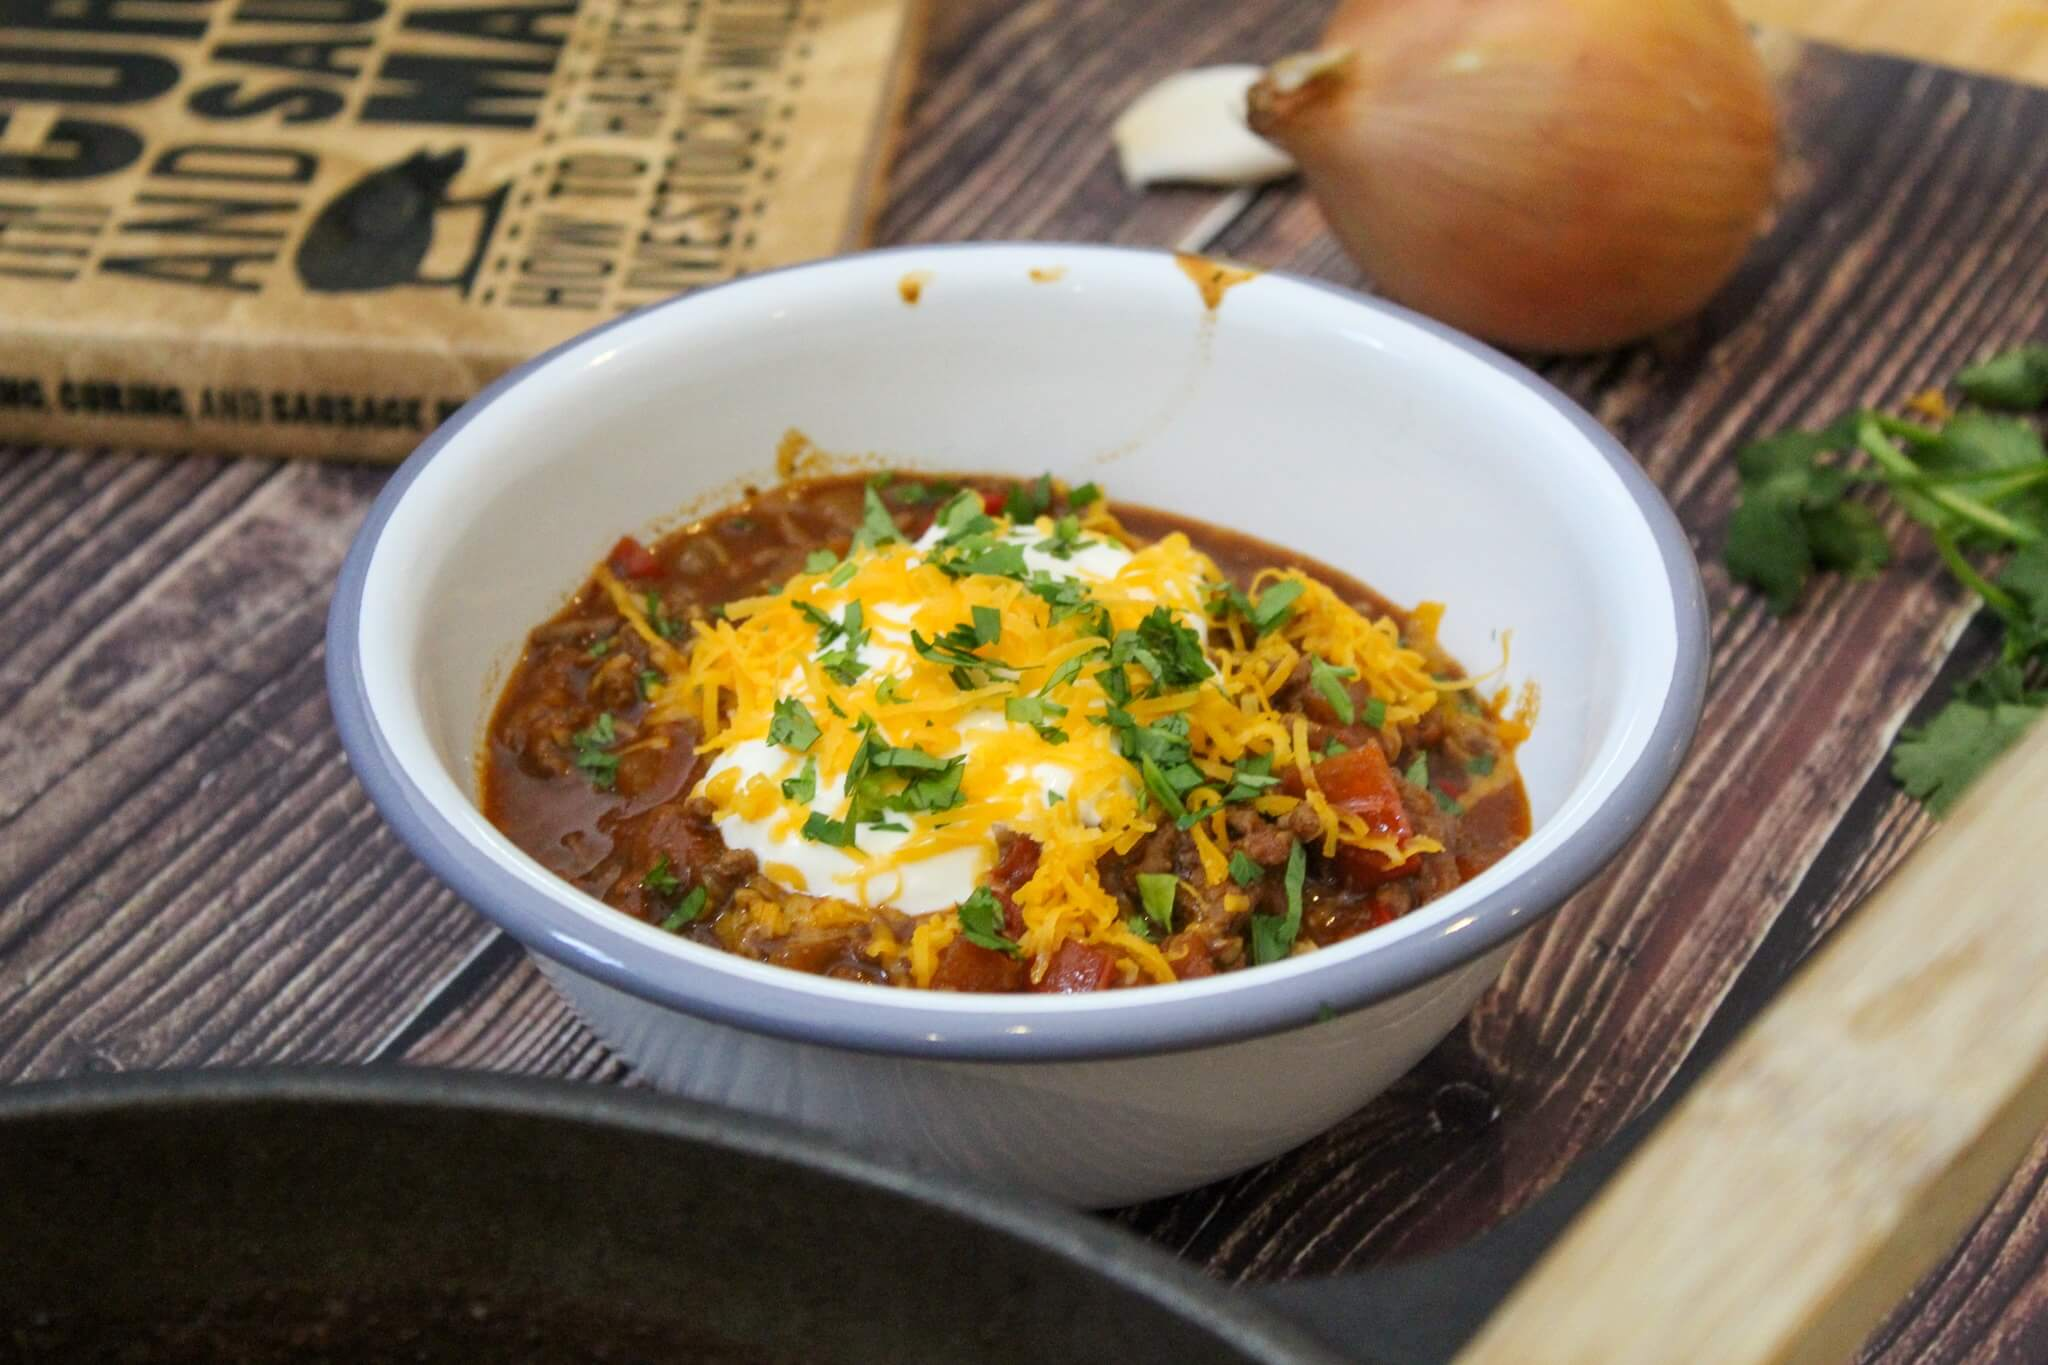 Freshly cooked texan chili with sour cream, cheese, and cilantro